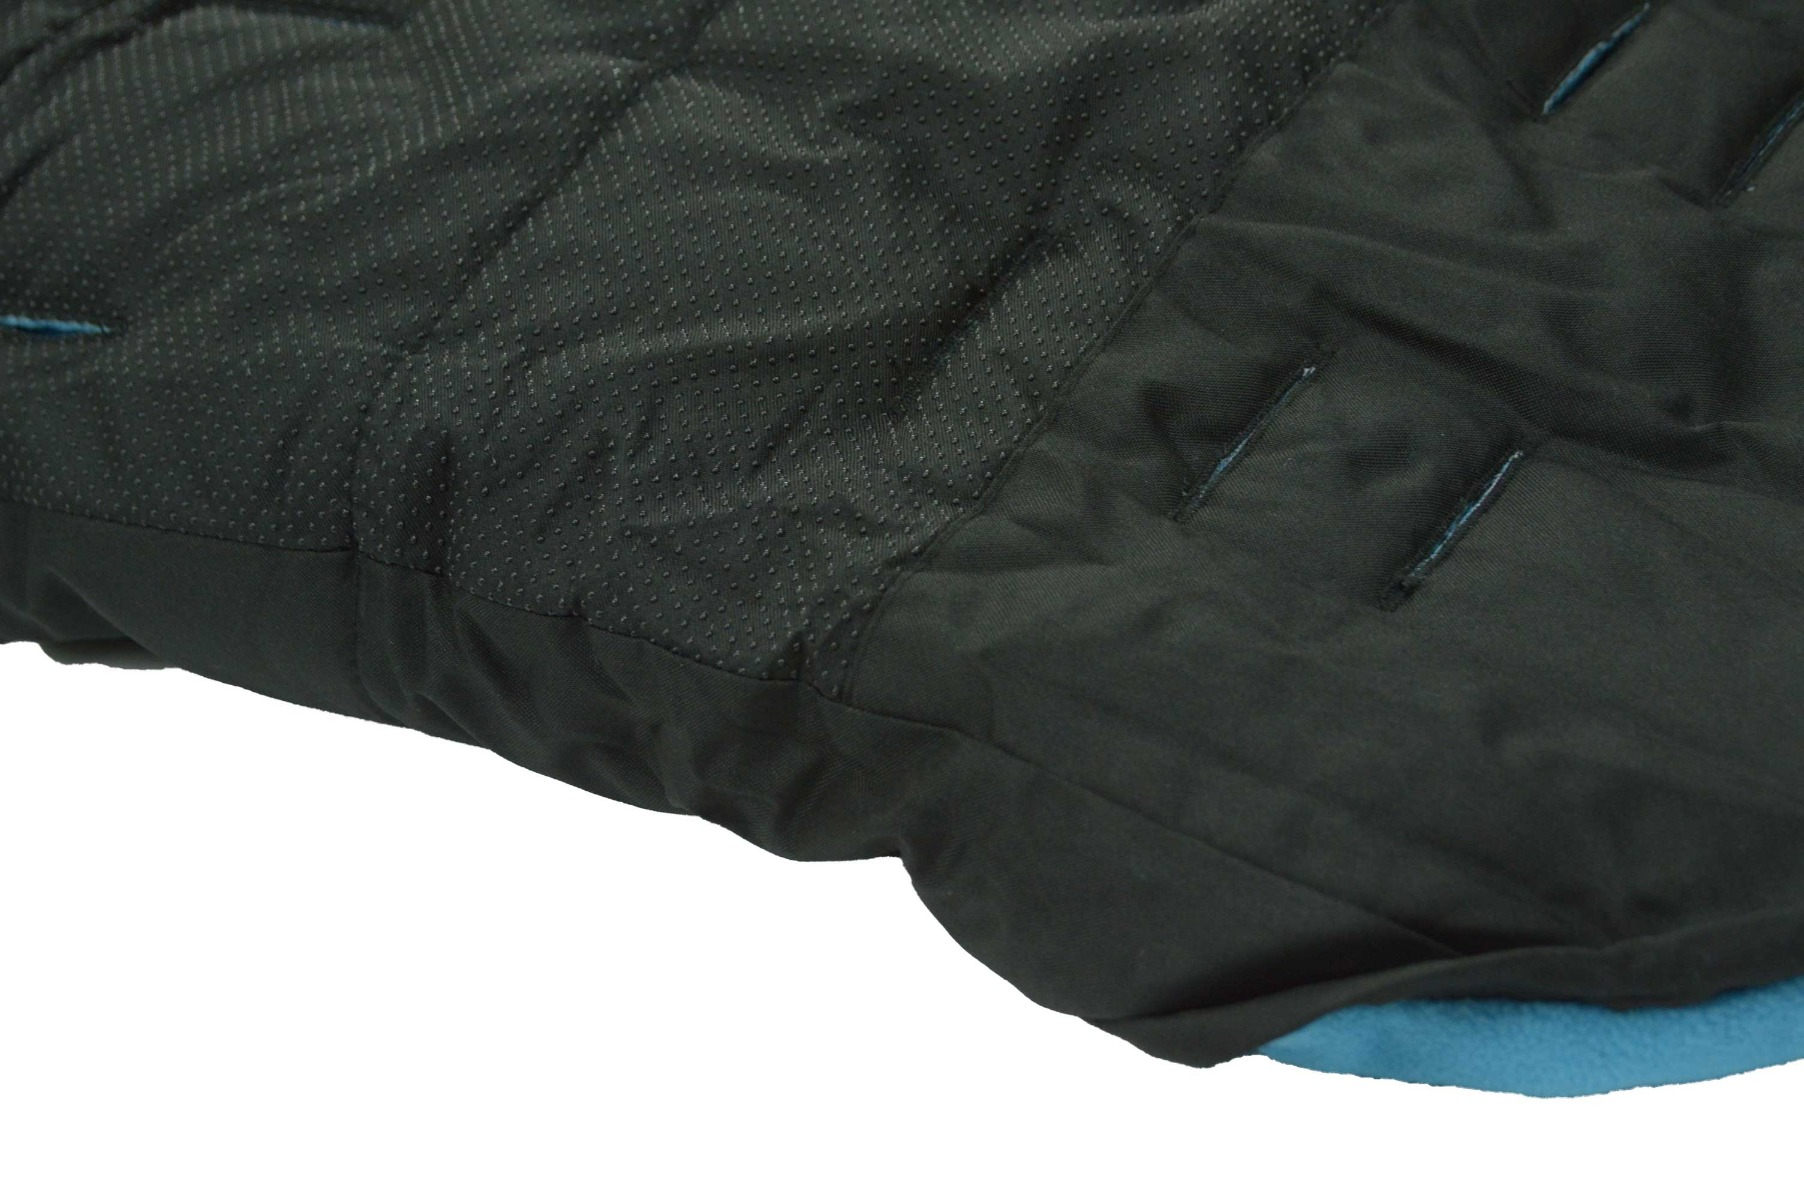 Deluxe-Pushchair-Footmuff-Cosy-Toes-Pram-Baby-Stroller-Buggy-Travel-System thumbnail 10